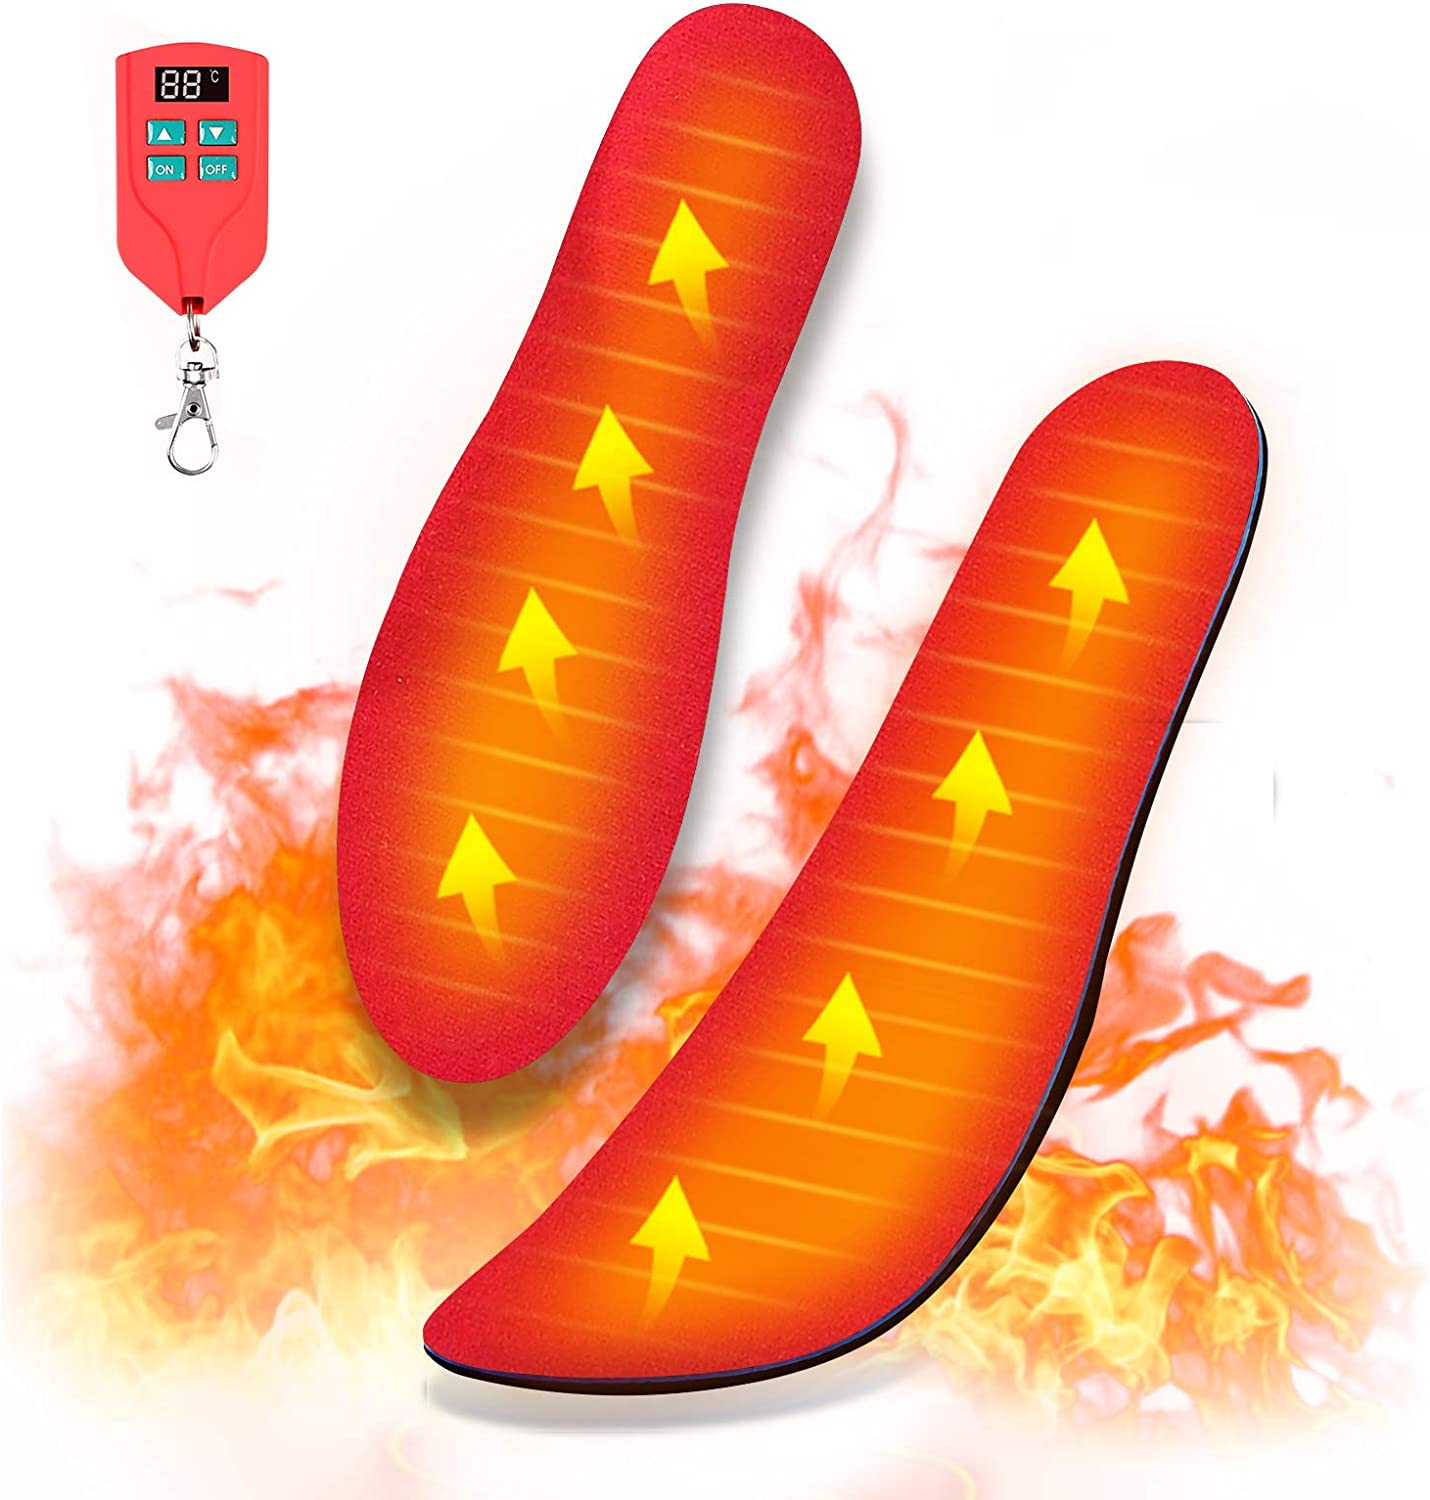 Wodesid Rechargeable Heated Insoles with Wireless Remote Control for Women Men Electric Heating Boot Insoles for Hunting USB Shoes Pad Foot Warmer Winter Outdoor Indoor (SM-Women 5.5-9, Men 4-8)